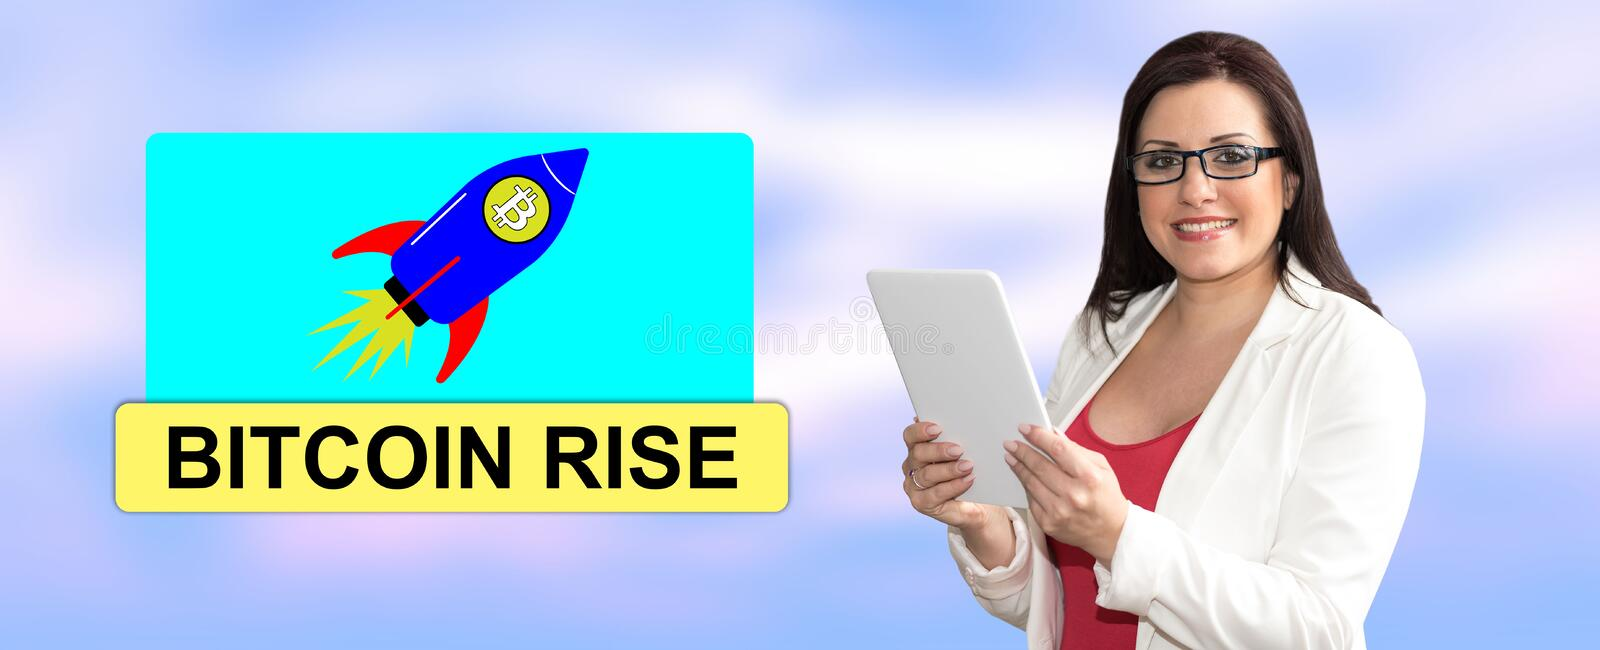 Concept of bitcoin rise stock image